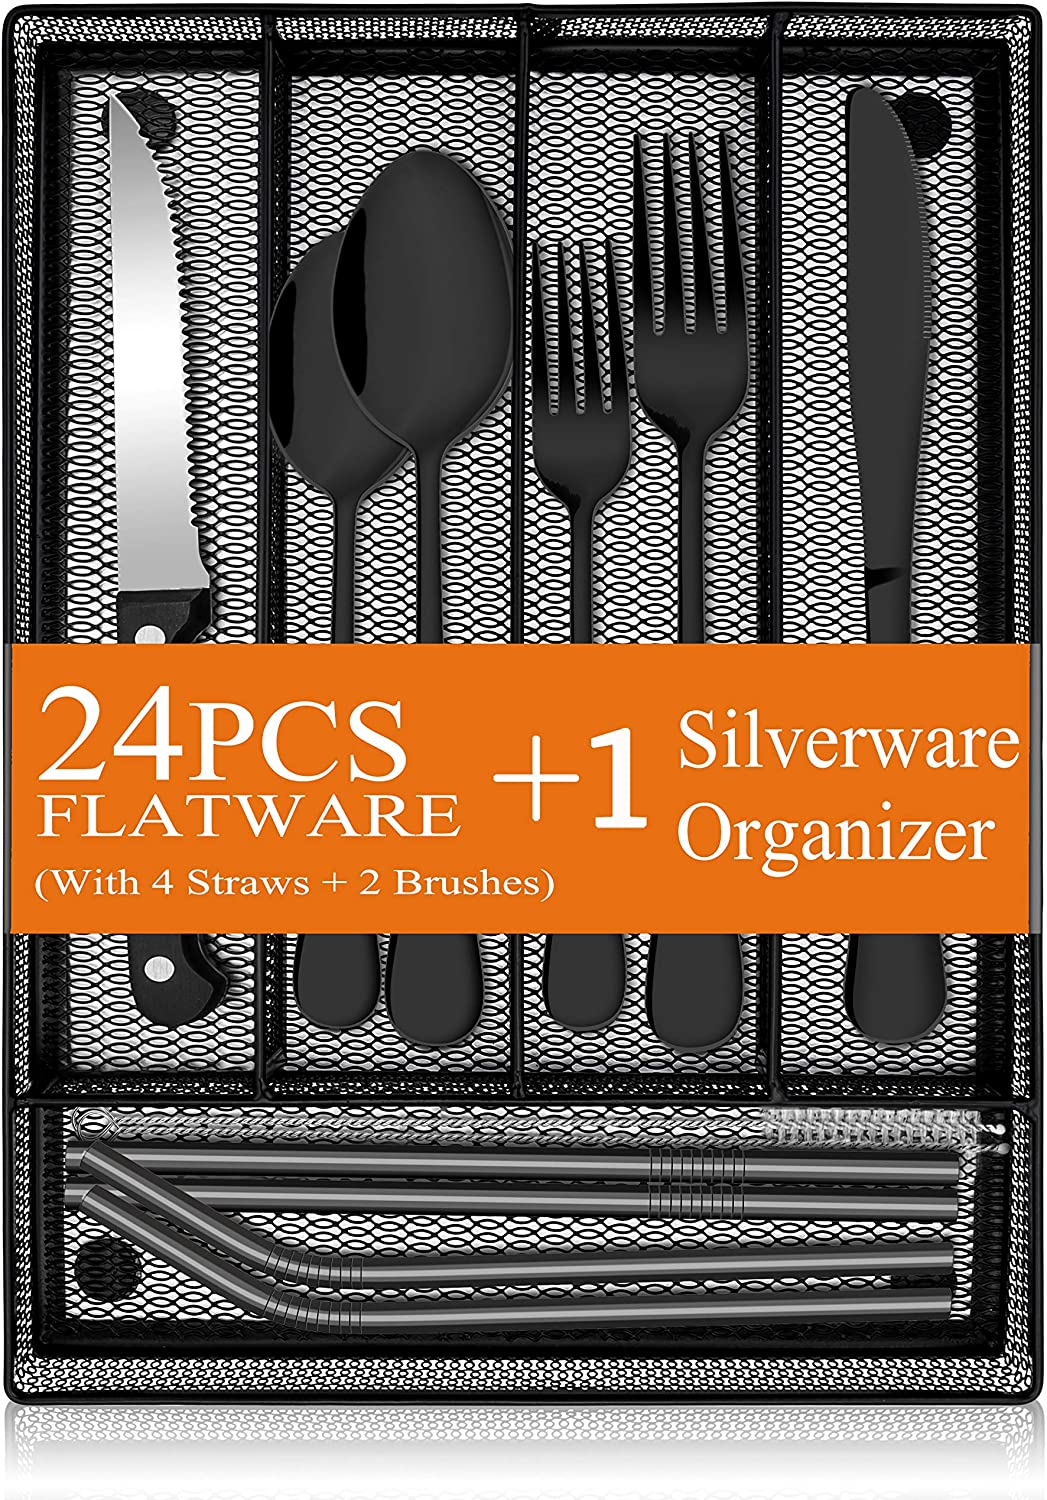 31-Piece Silverware Set, E-far Stainless Steel Flatware Cutlery Set Service for 4 with Utensil Organizer, Include Forks/Spoons/Knives/Steak Knives/Straws, Mirror Polish & Dishwasher Safe (Black)